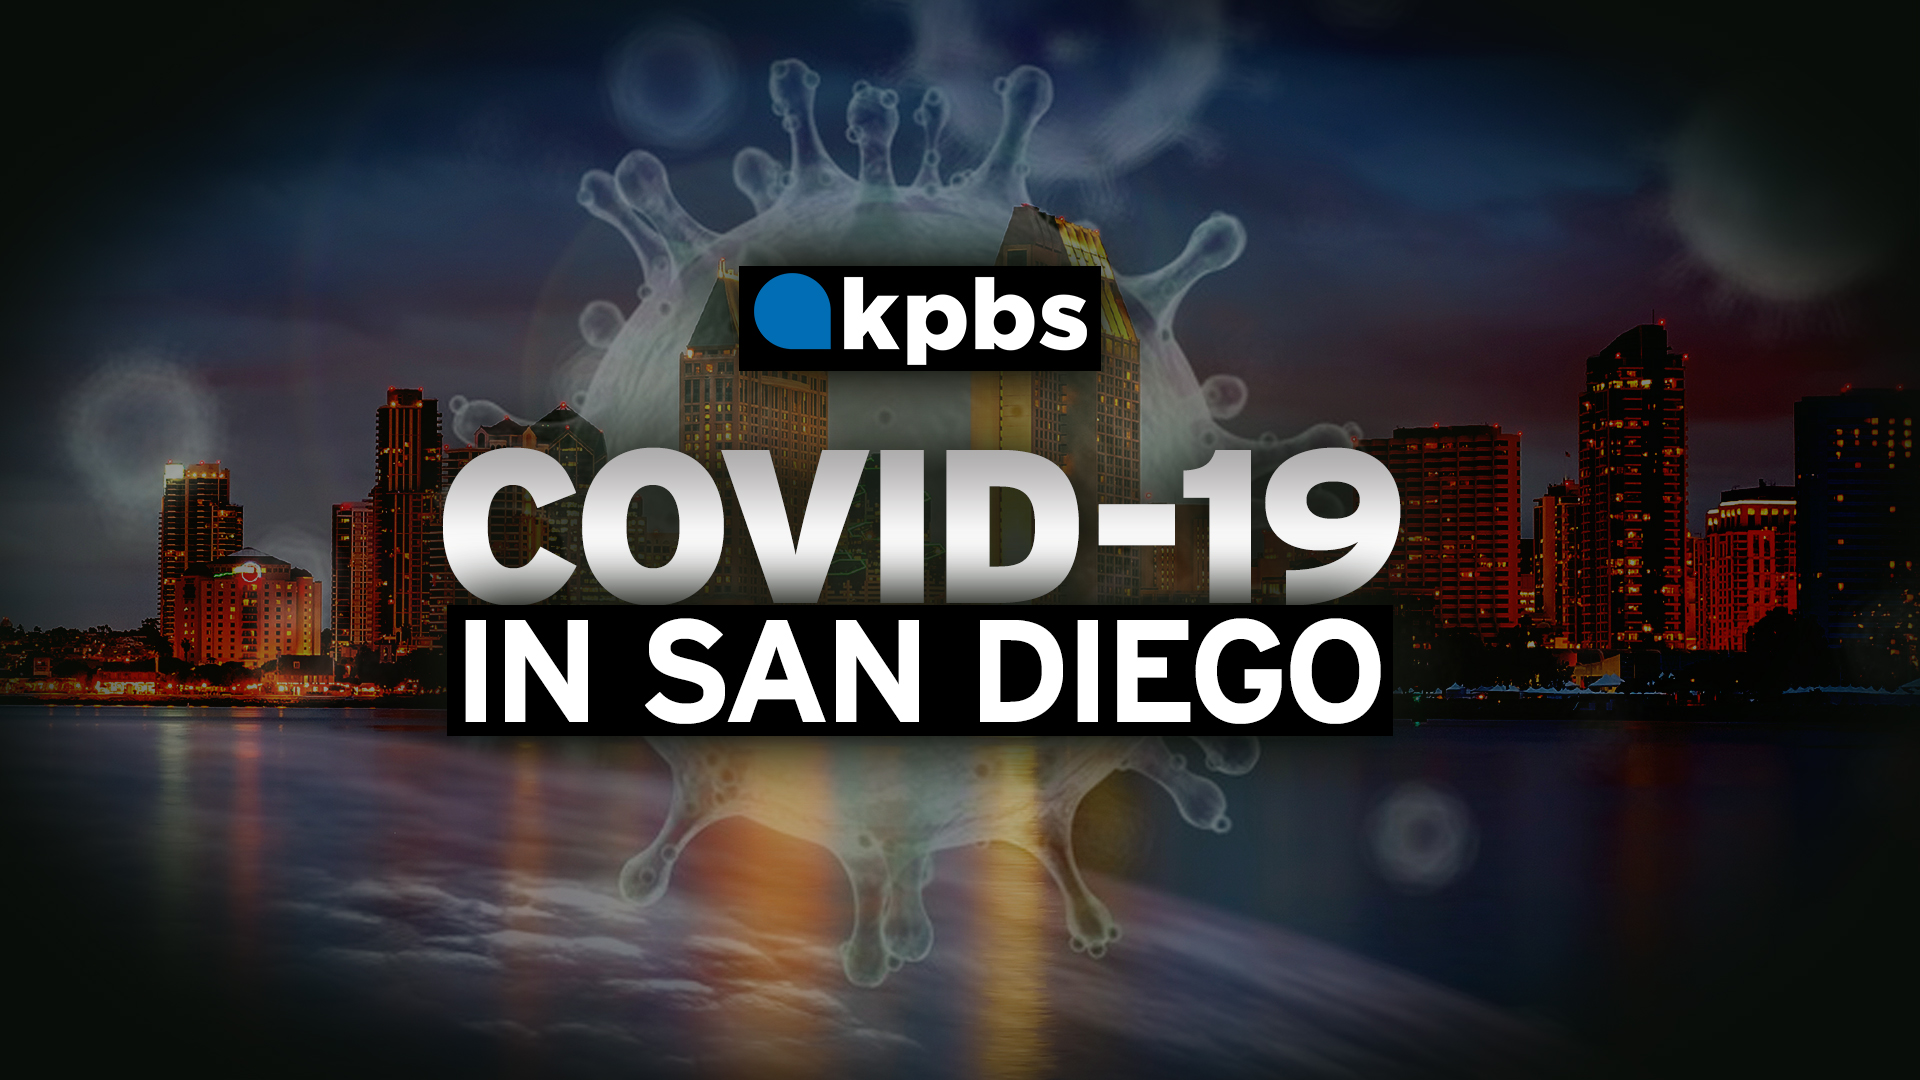 Live Blog 305 New Covid 19 Cases 9 Deaths Reported In San Diego Kpbs